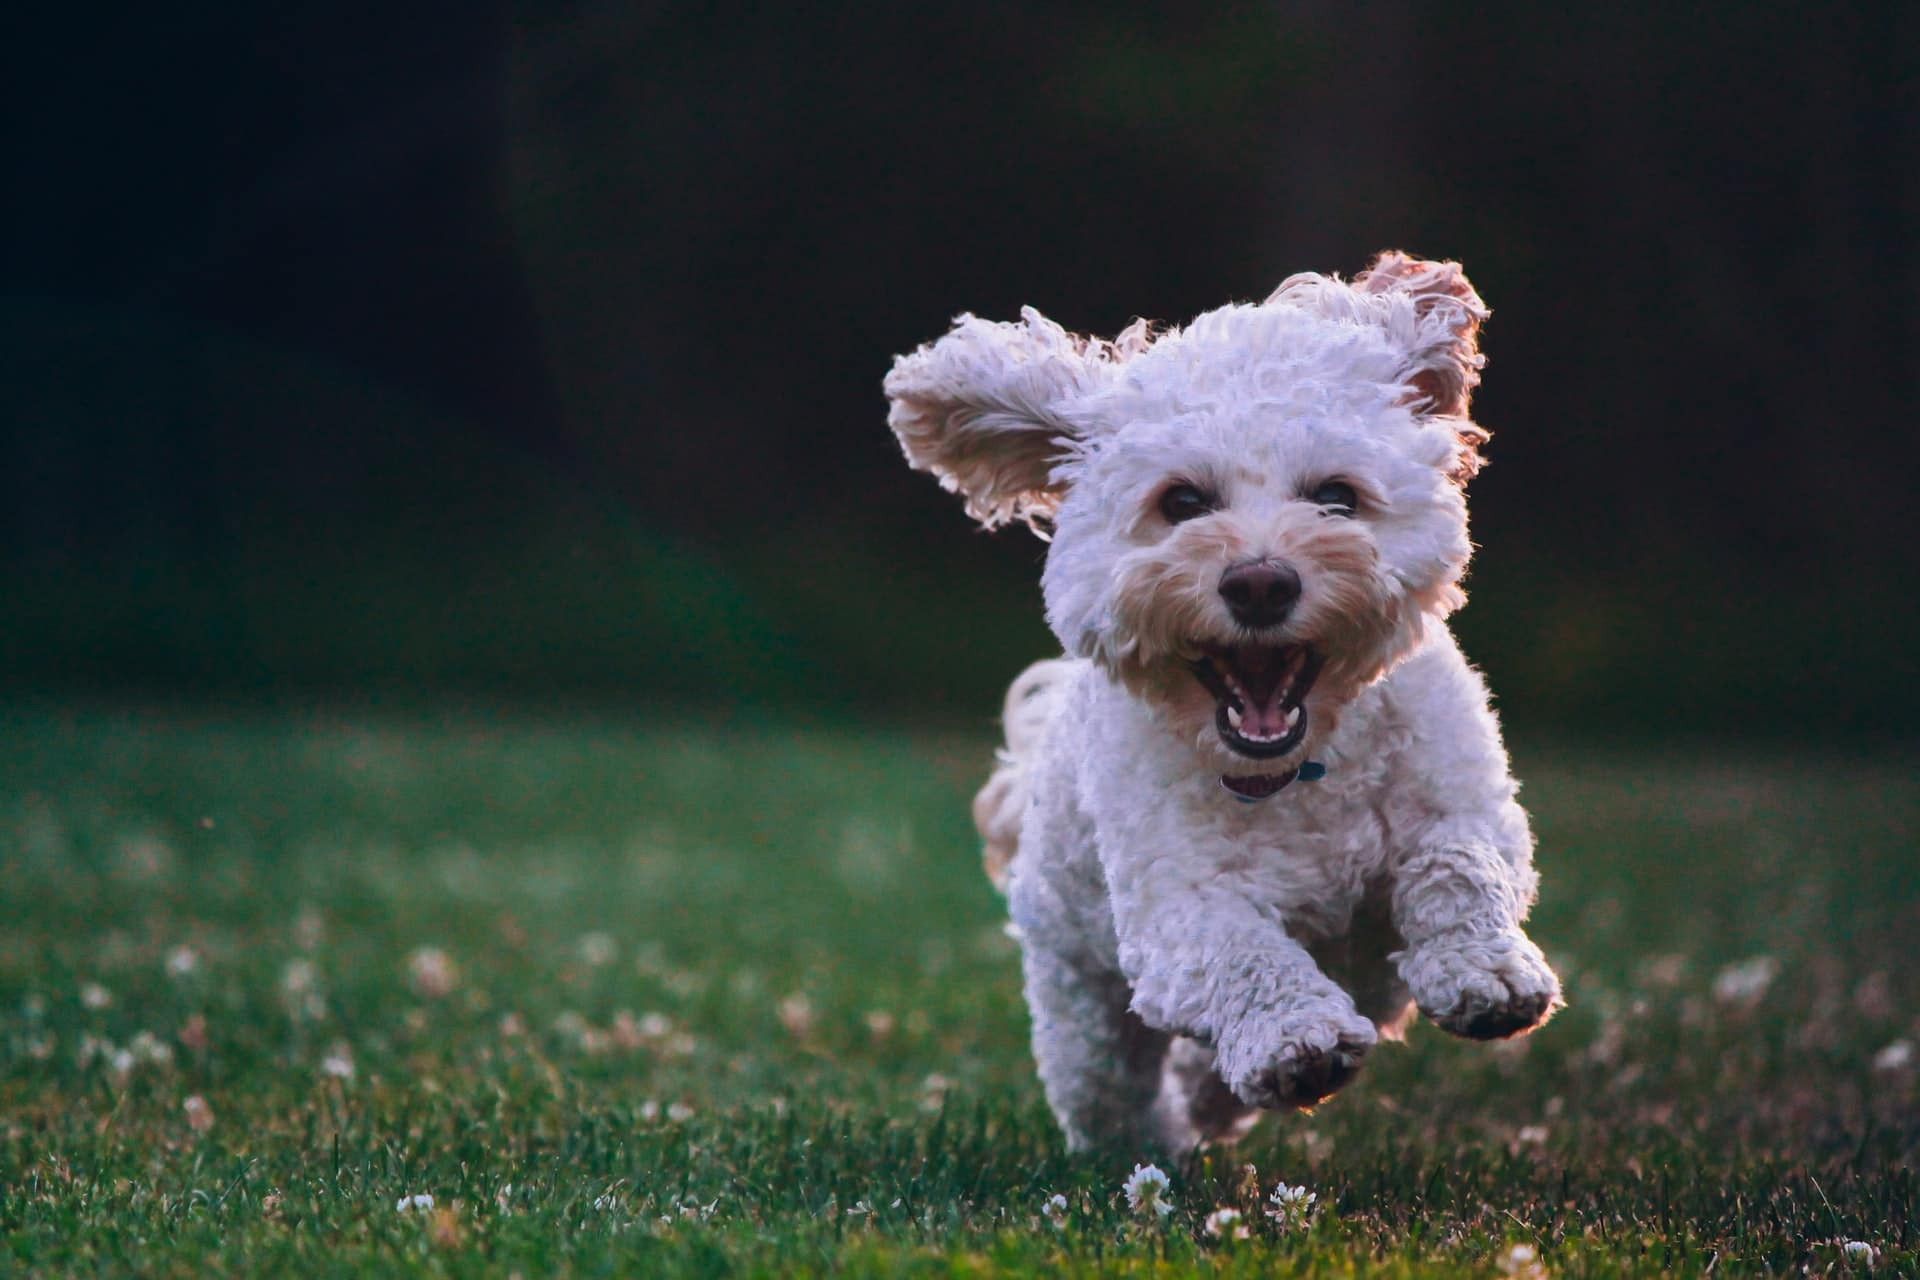 White cockapoo puppy playing outside